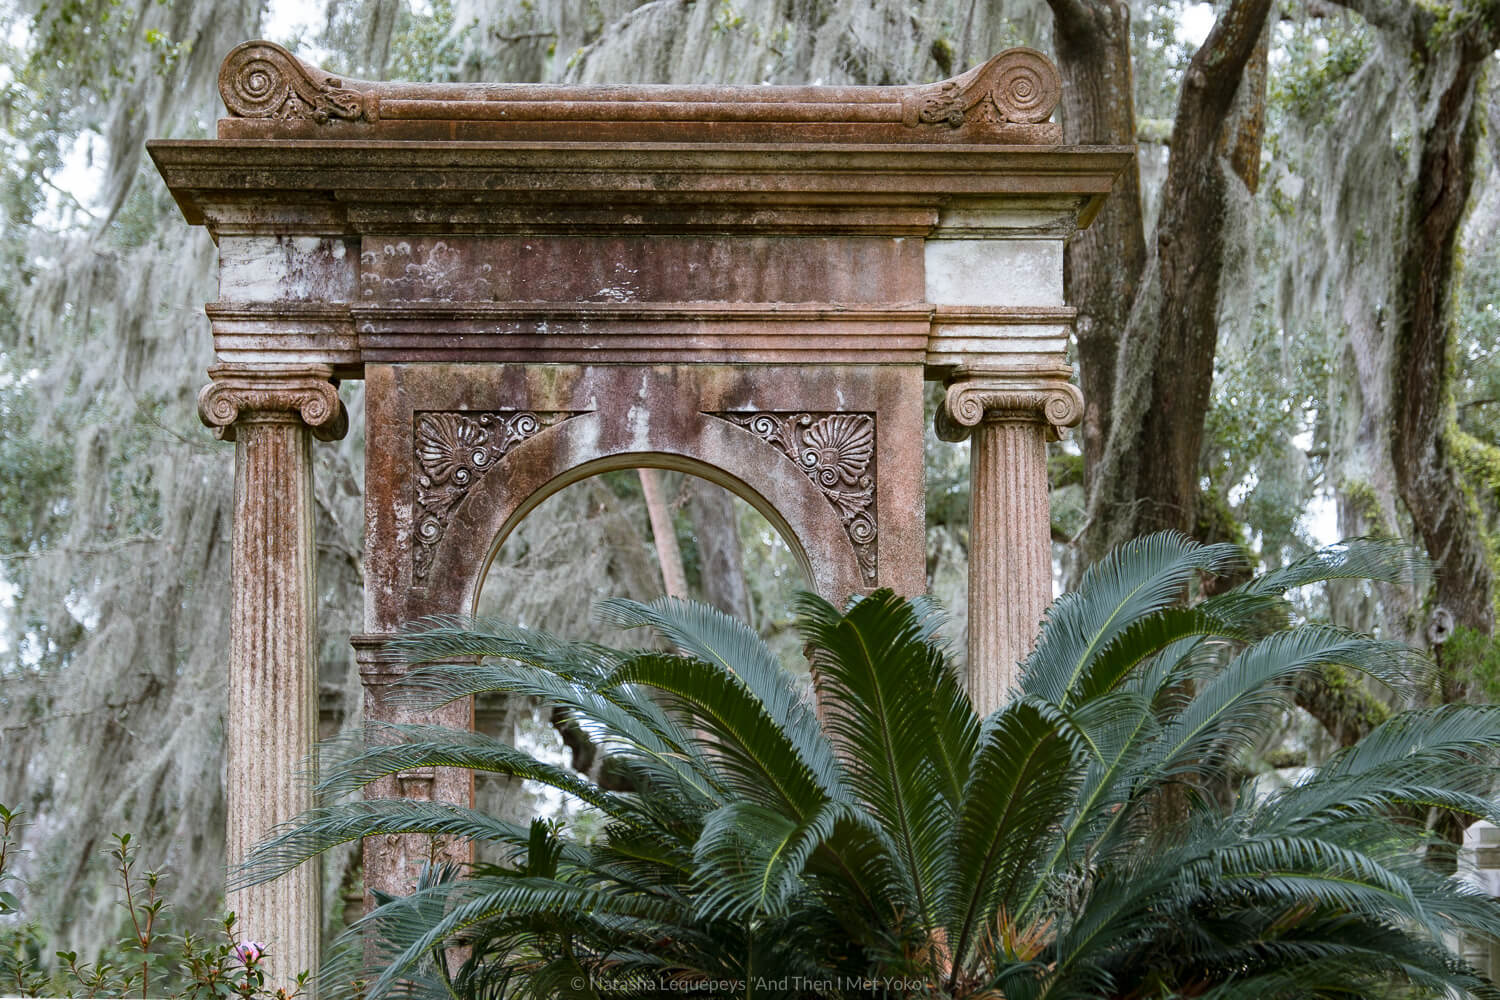 """Bonaventure Cemetery in Savannah, Georgia. Travel photography and guide by © Natasha Lequepeys for """"And Then I Met Yoko"""". #bonaventurecemetery #savannah #travelguide #travelblog #travelphotography #fujifilm"""